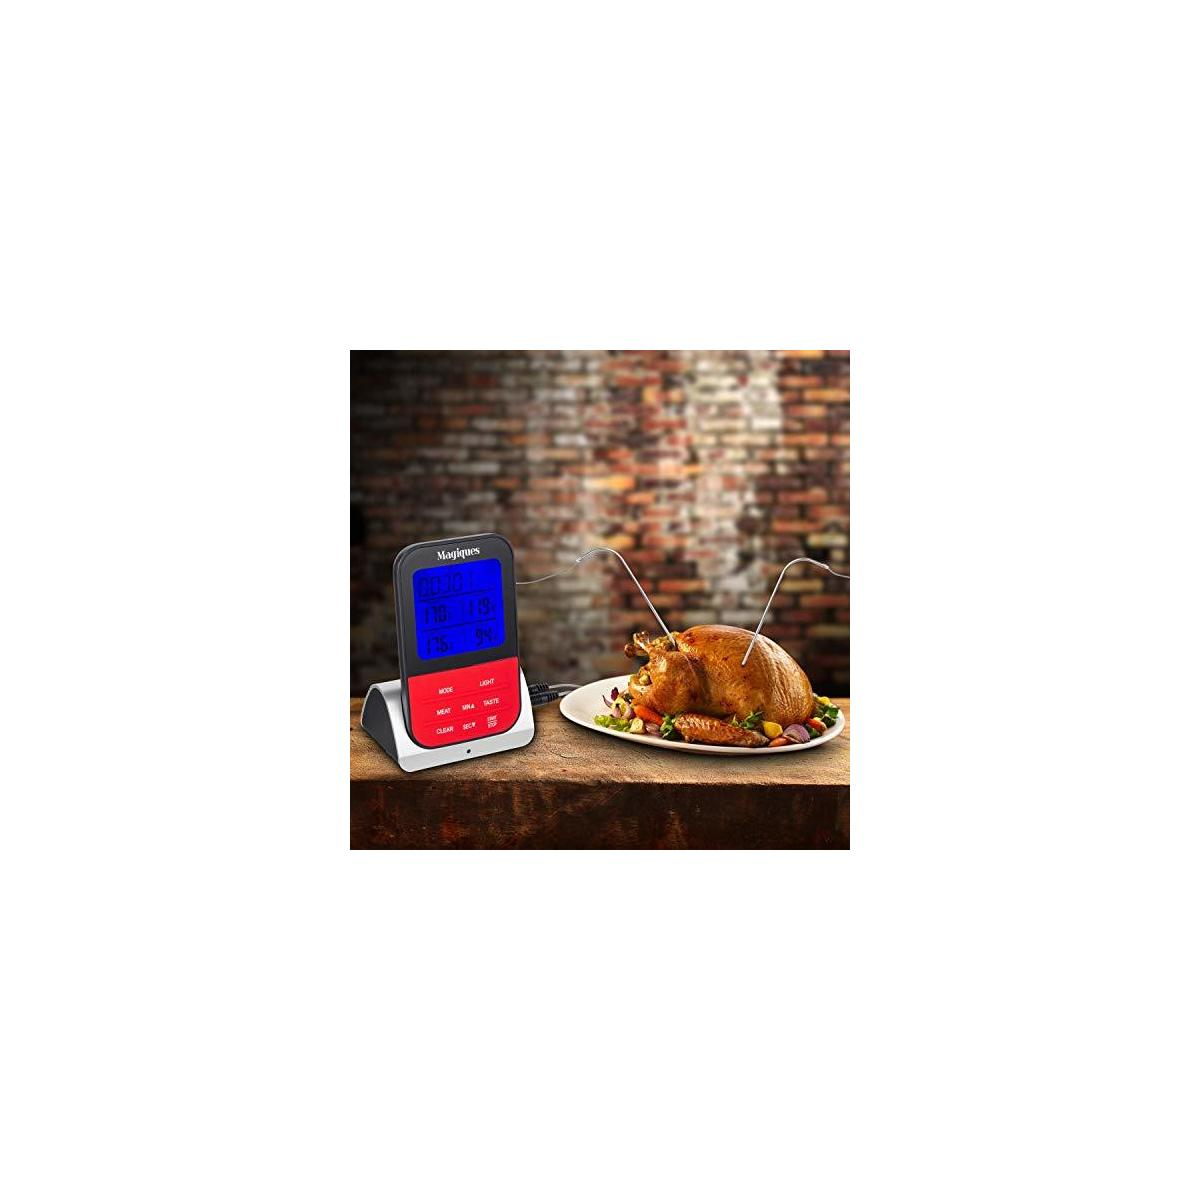 Wireless Meat Thermometer for grilling/smoking